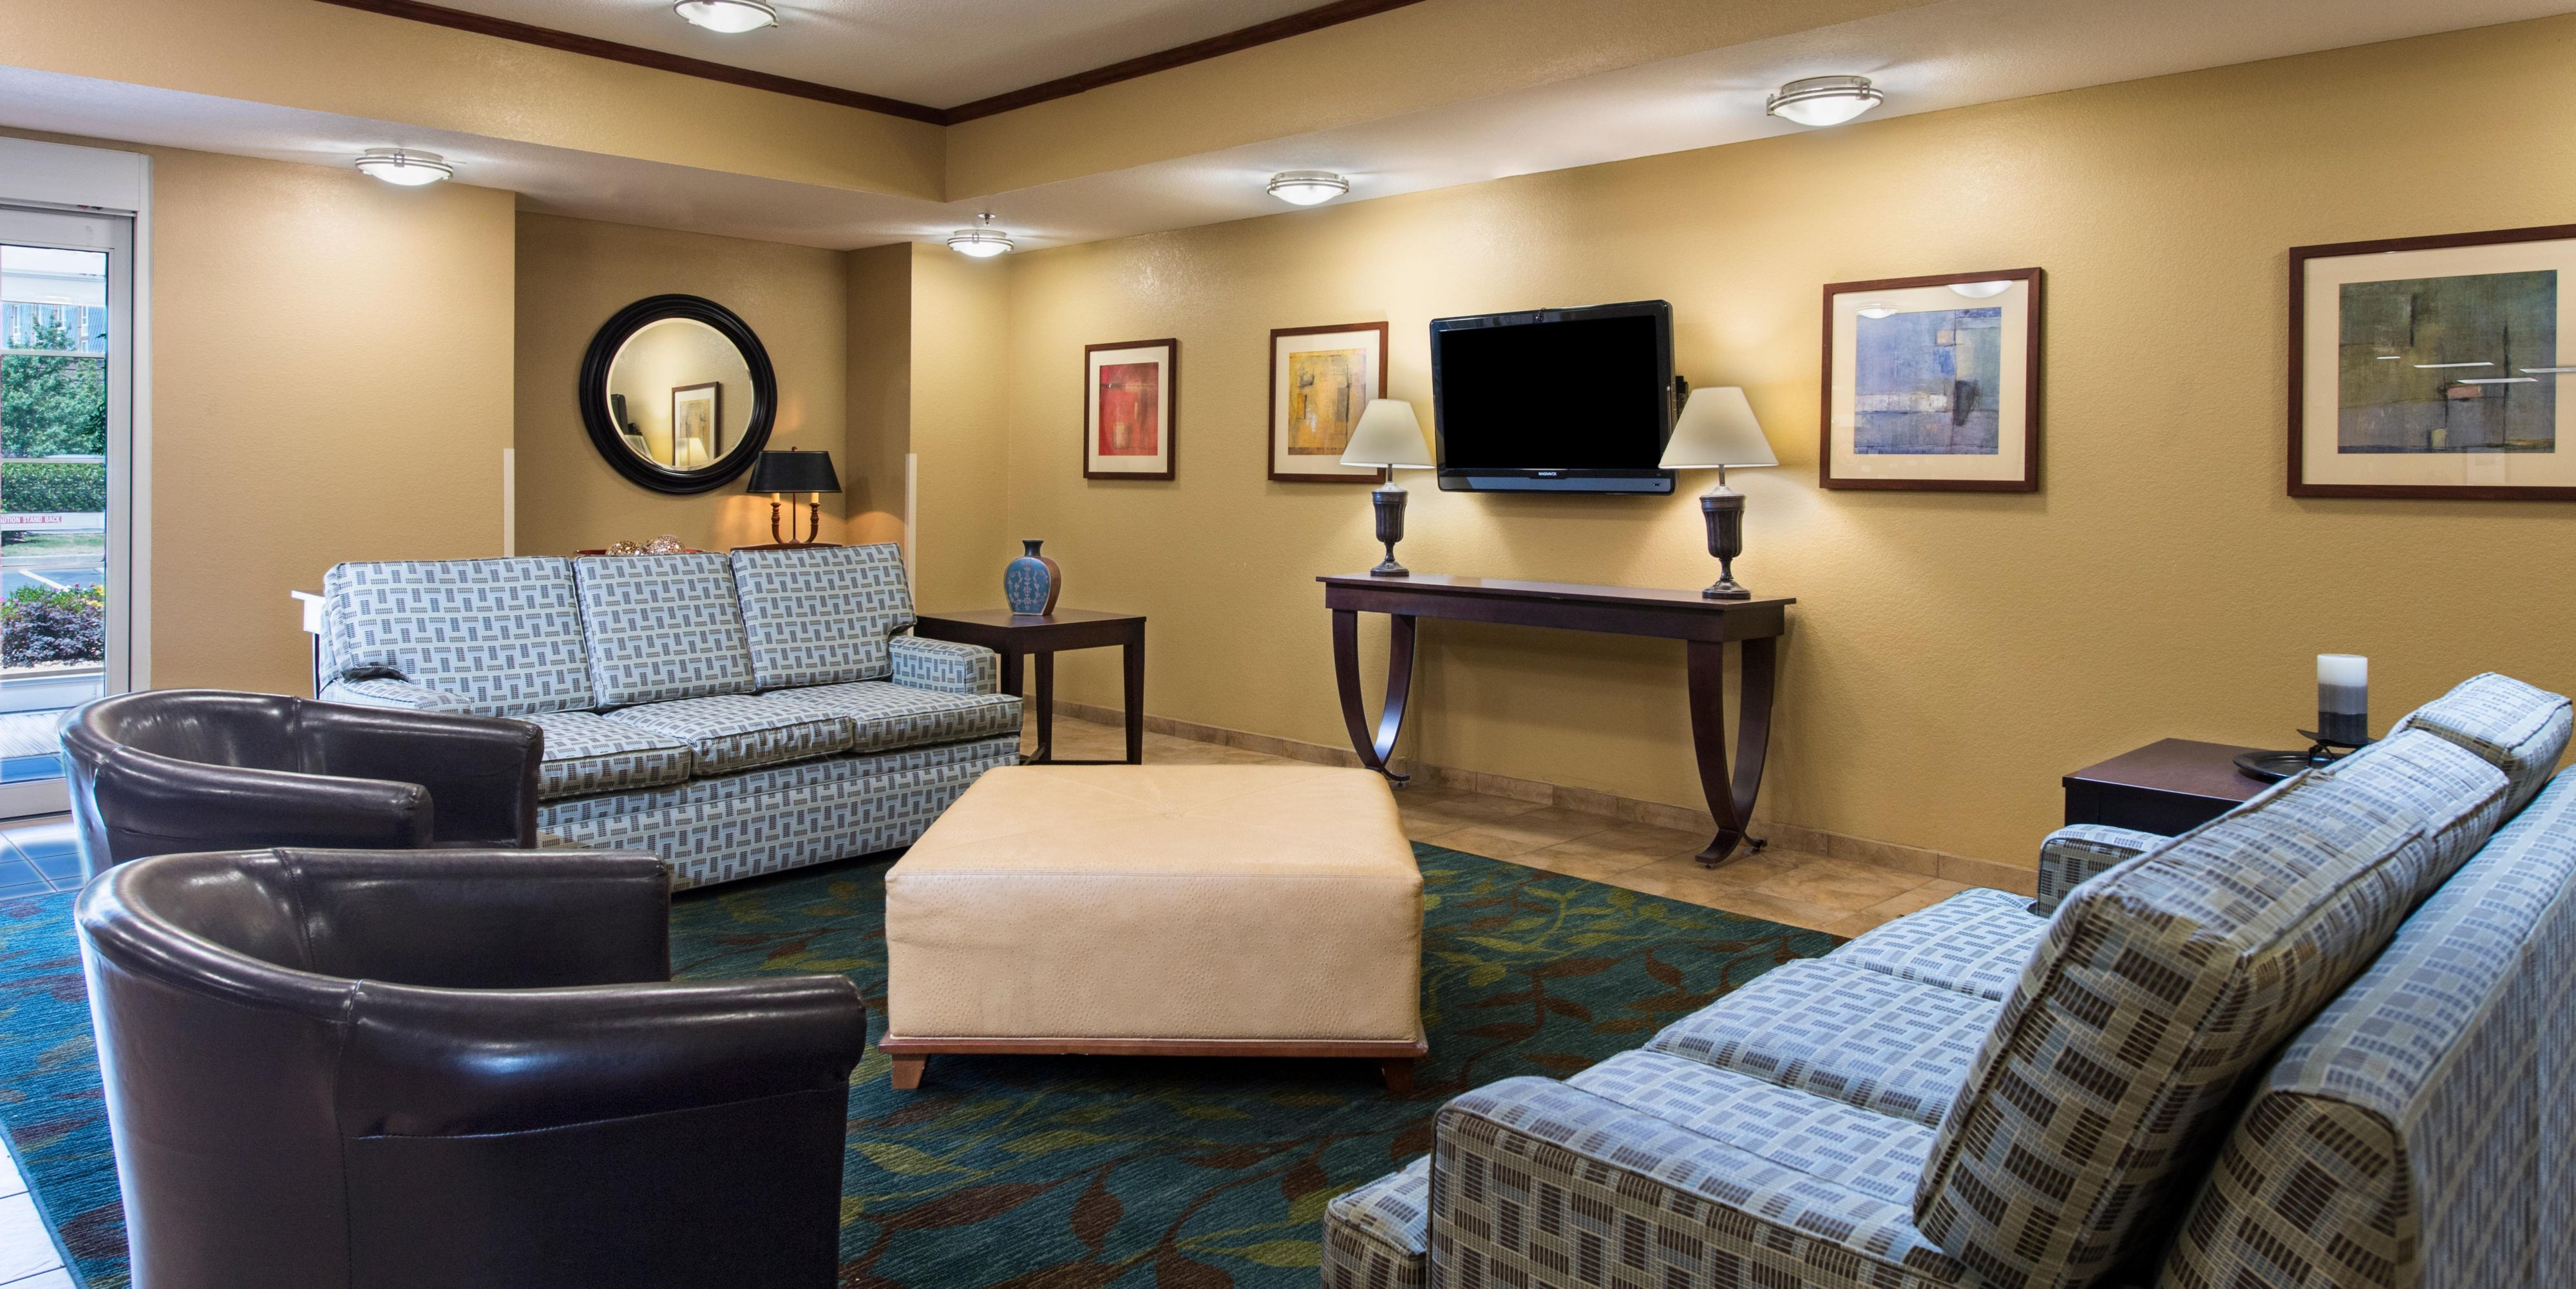 Macon Hotels: Candlewood Suites Macon   Extended Stay Hotel In Macon,  Georgia